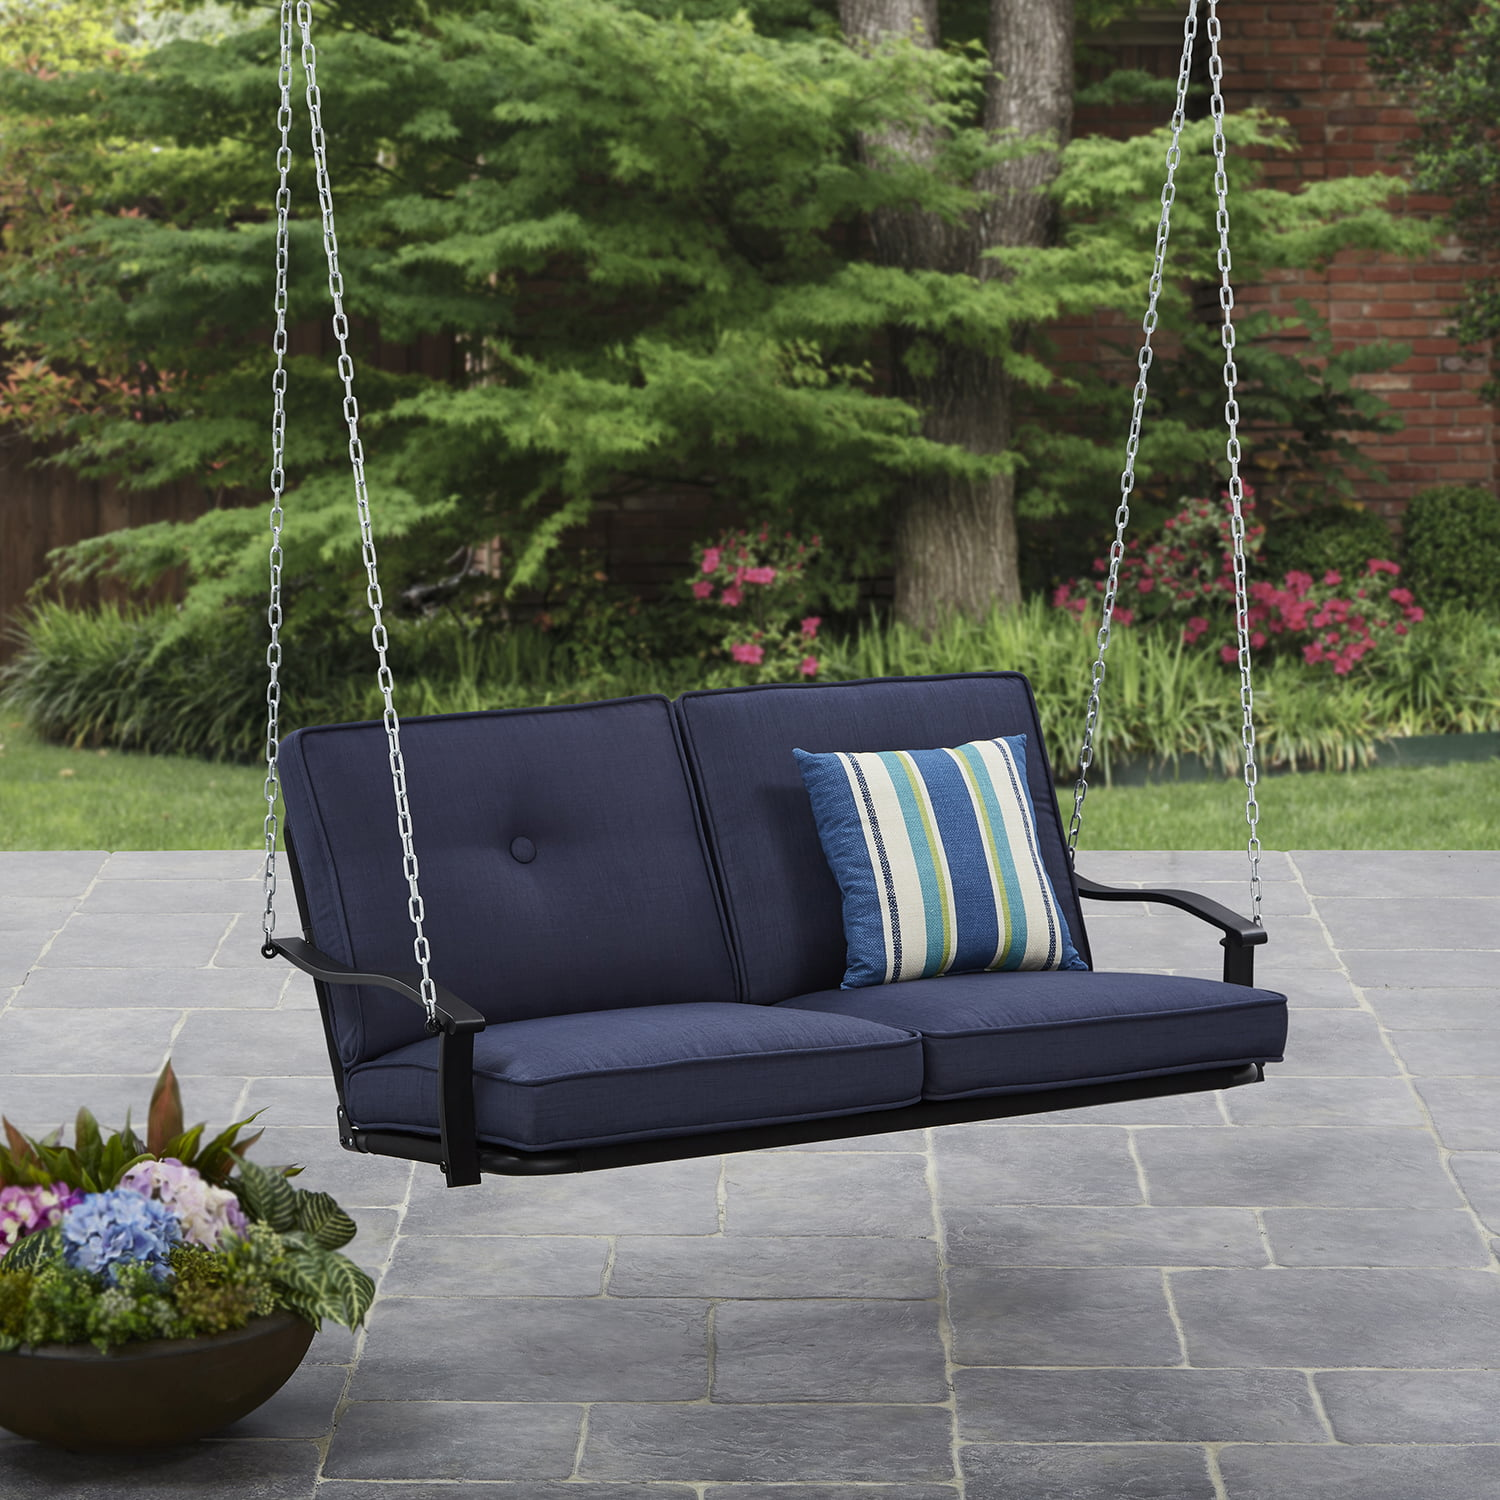 Mainstays Belden Park Outdoor Porch Swing With Cushion Seats 2